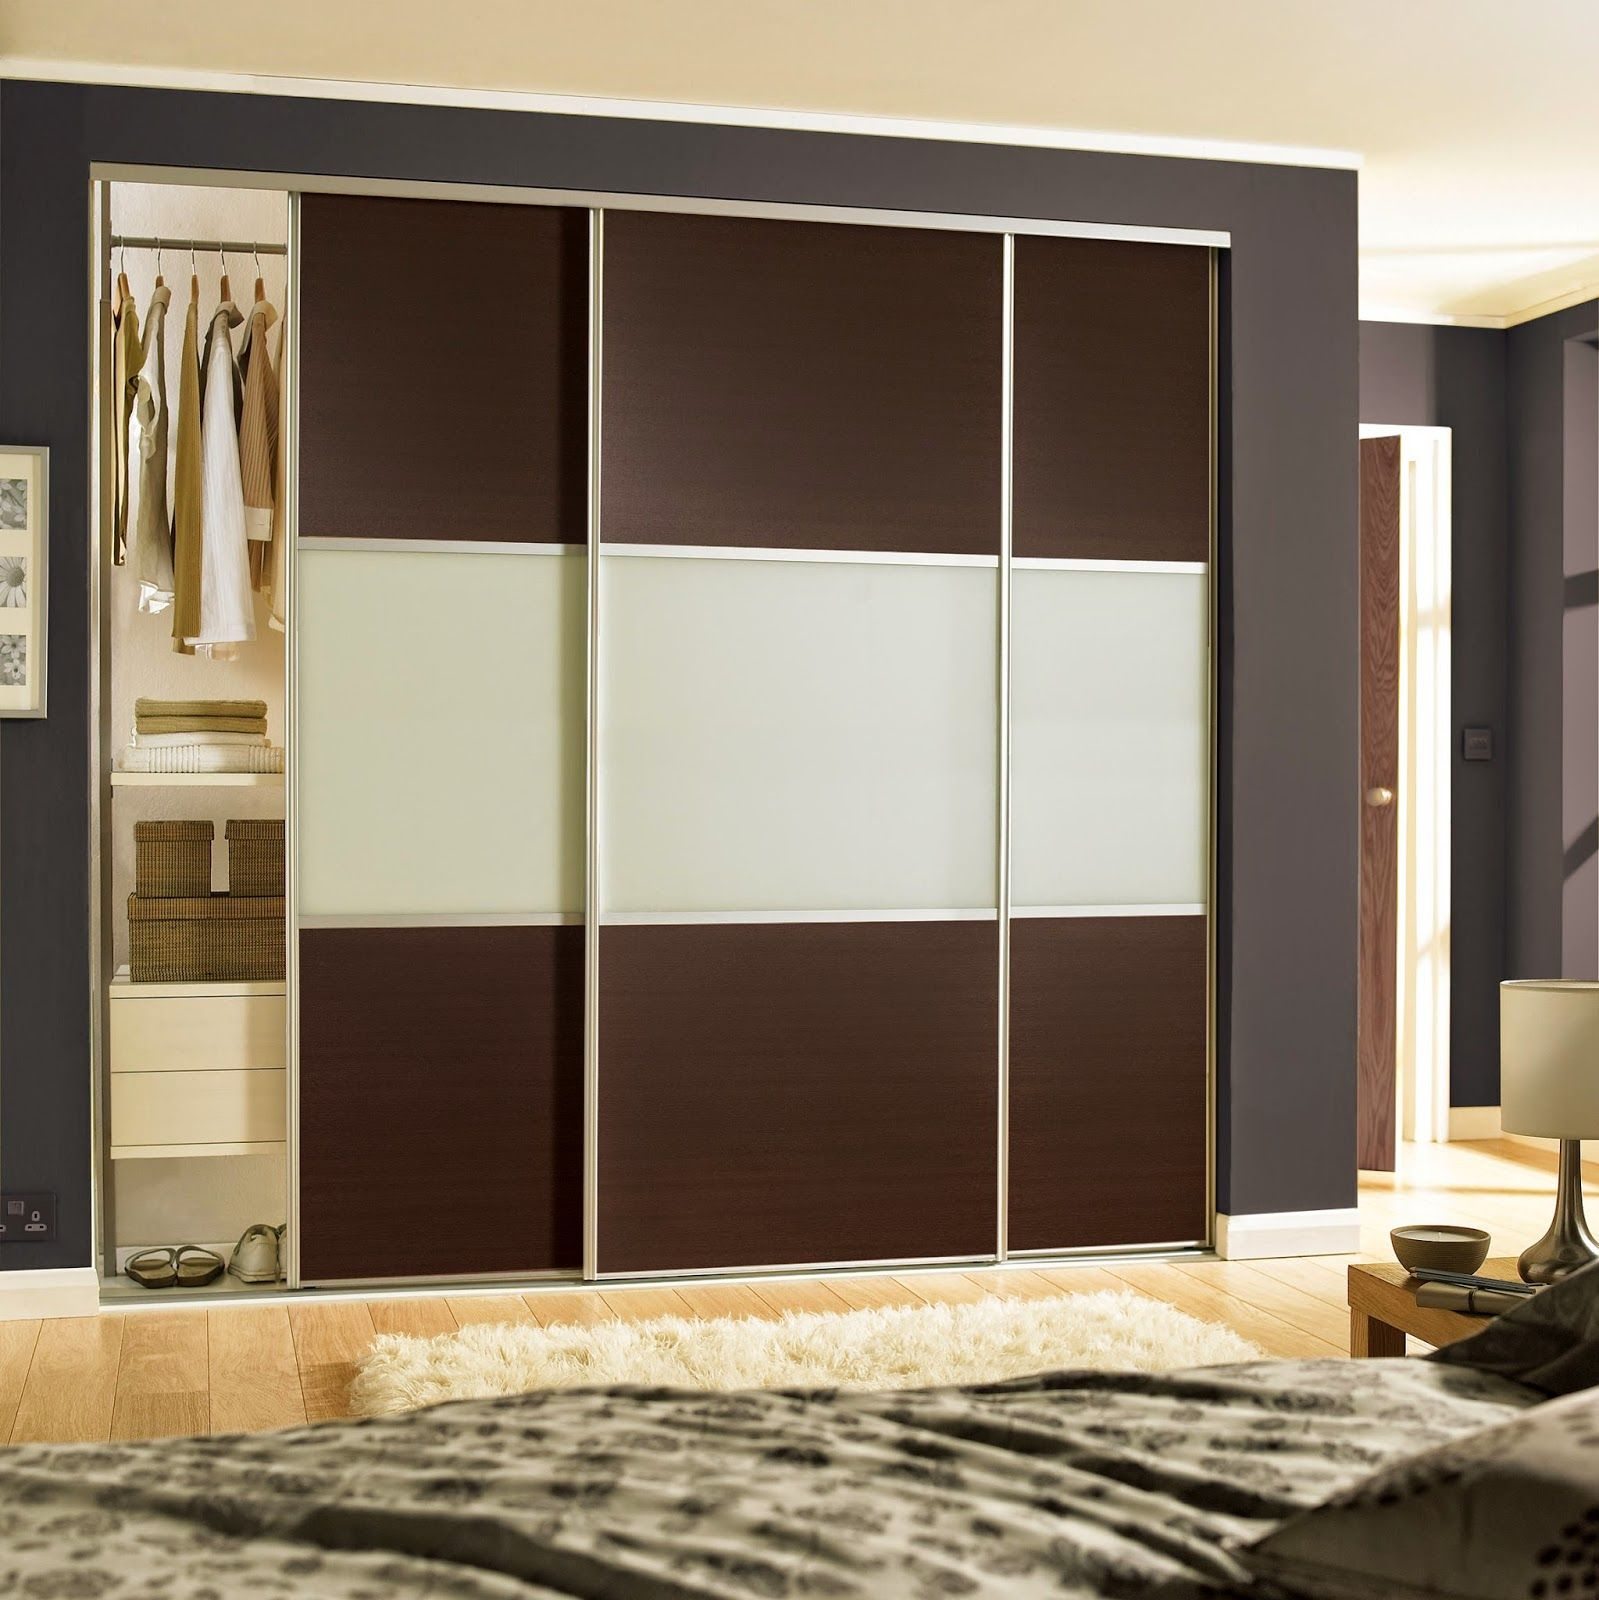 Cool Built In Sliding Fitted Wardrobes White Grey Doors With Storage For Bedroom Sliding Wardrobe Sliding Wardrobe Doors Wardrobe Doors